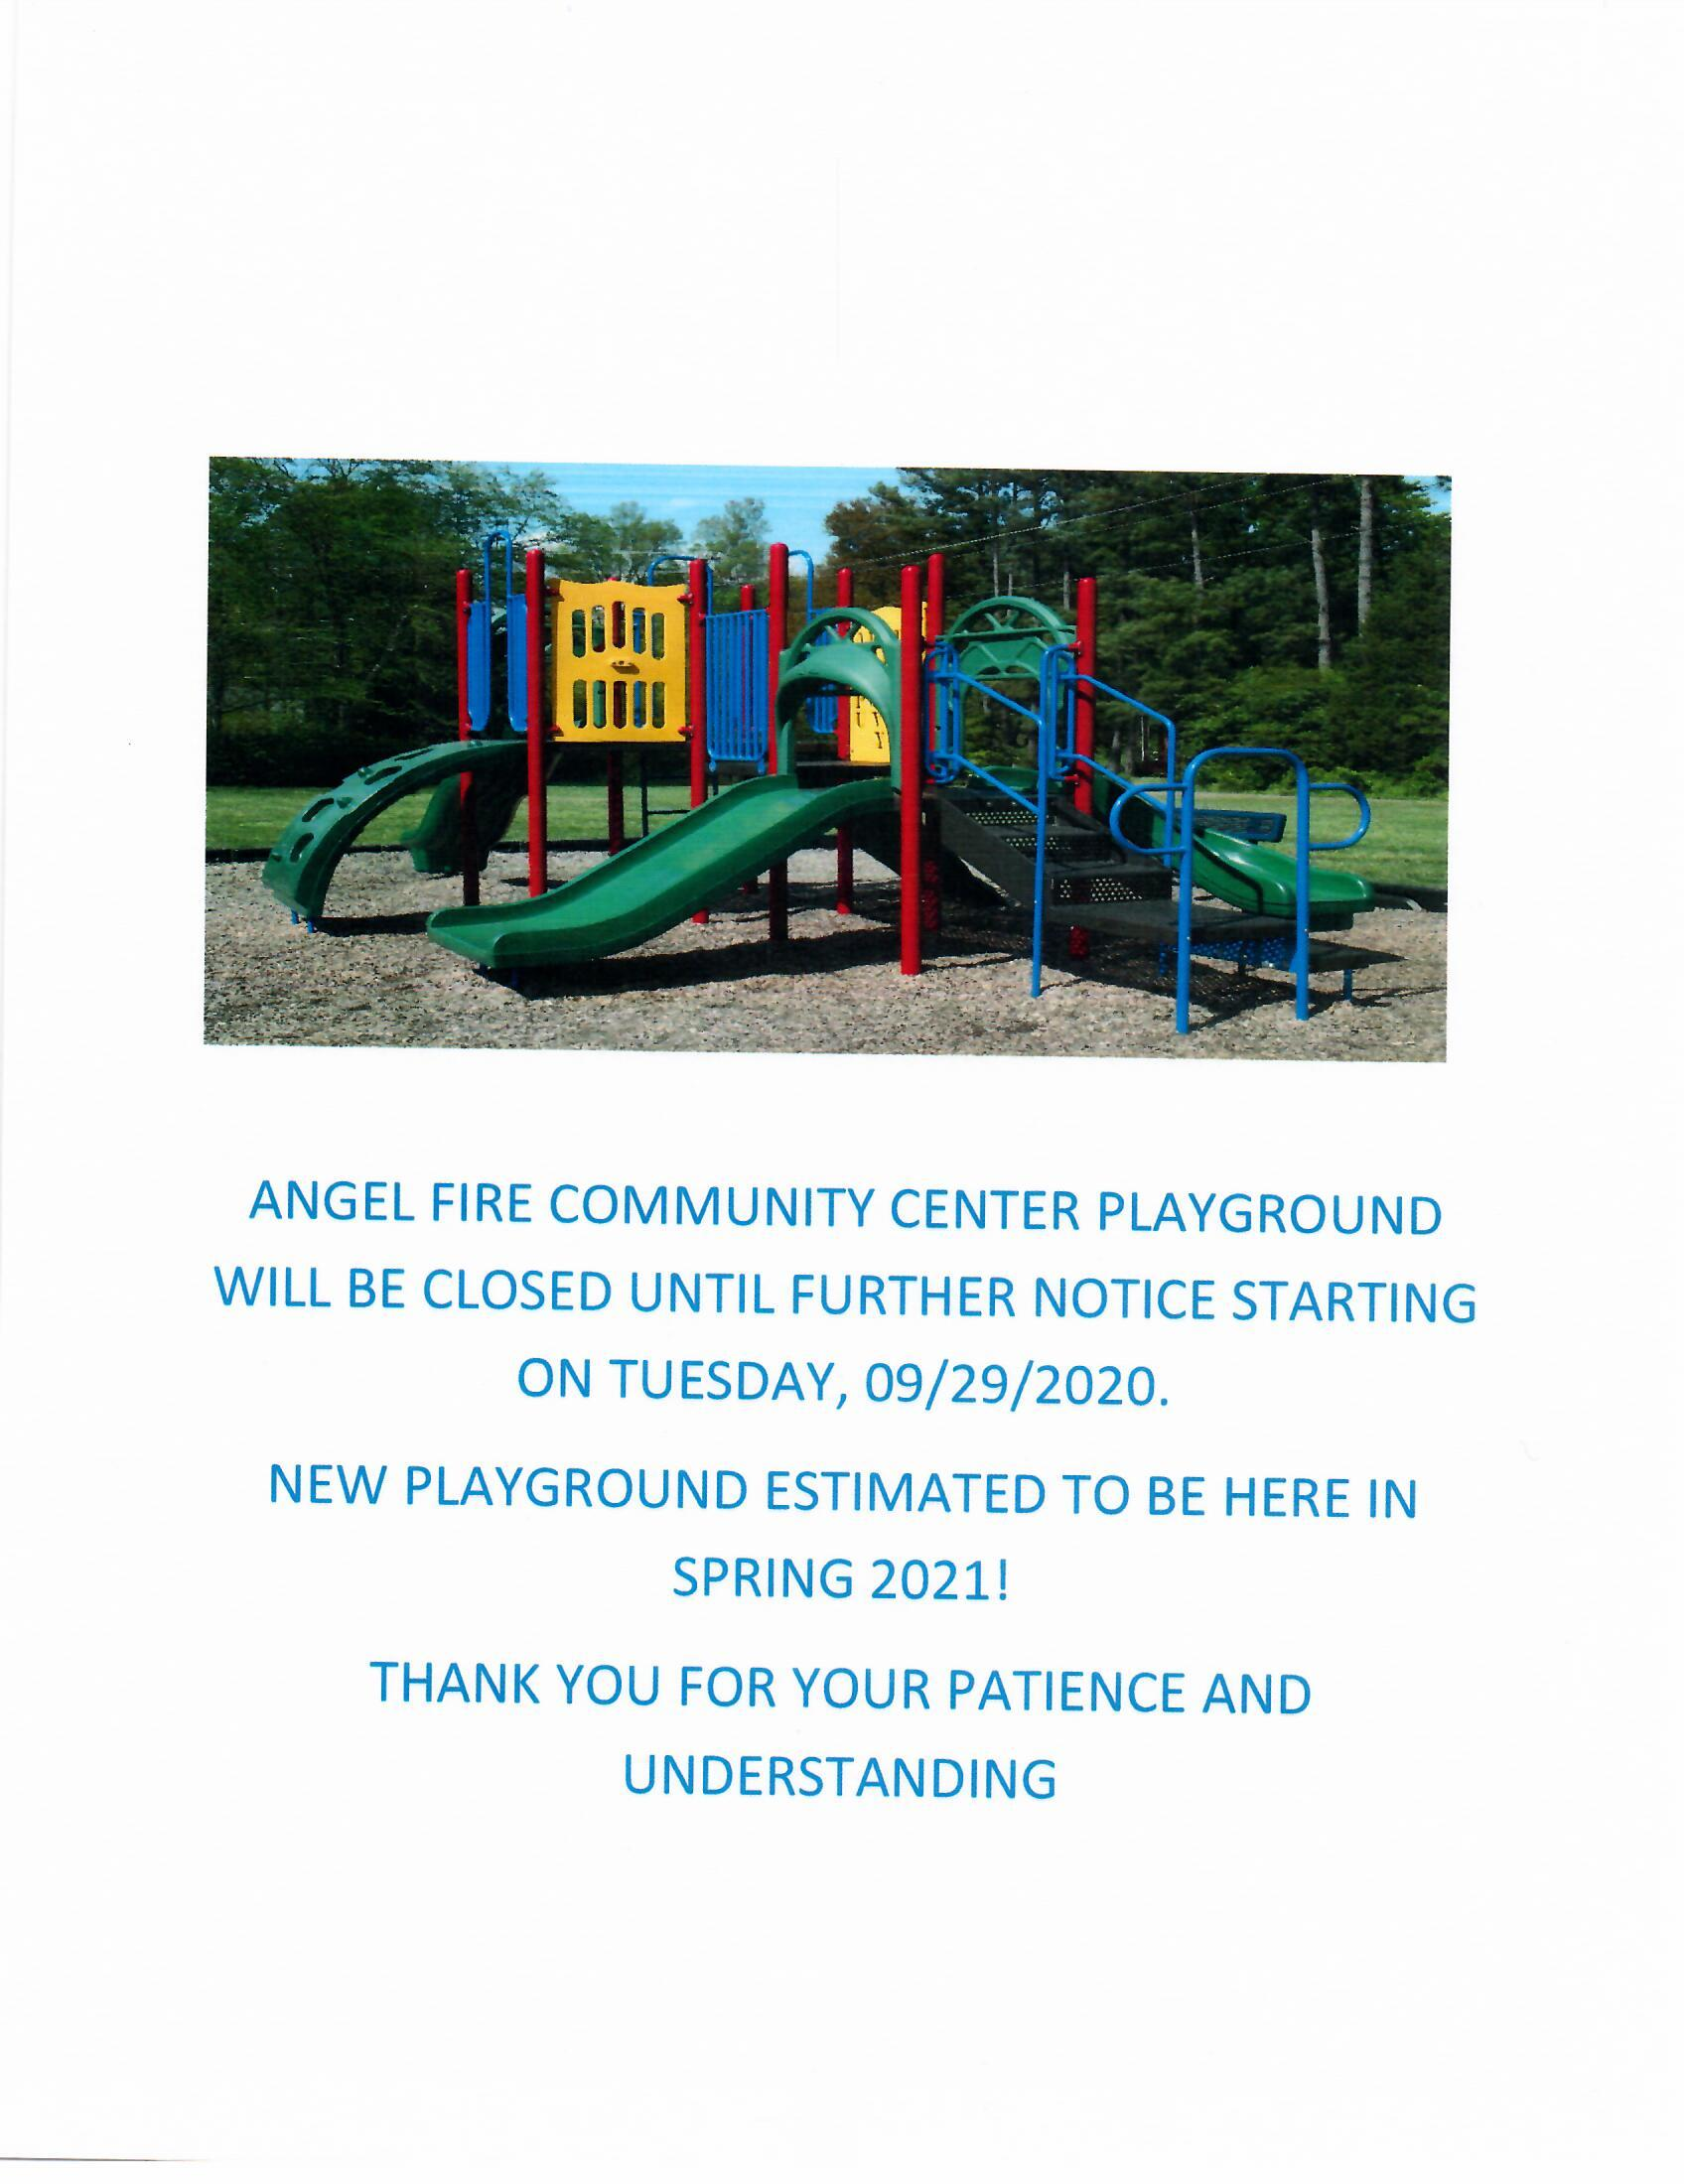 Community Center PLAYGORUND CLOSURE 09/29/2020